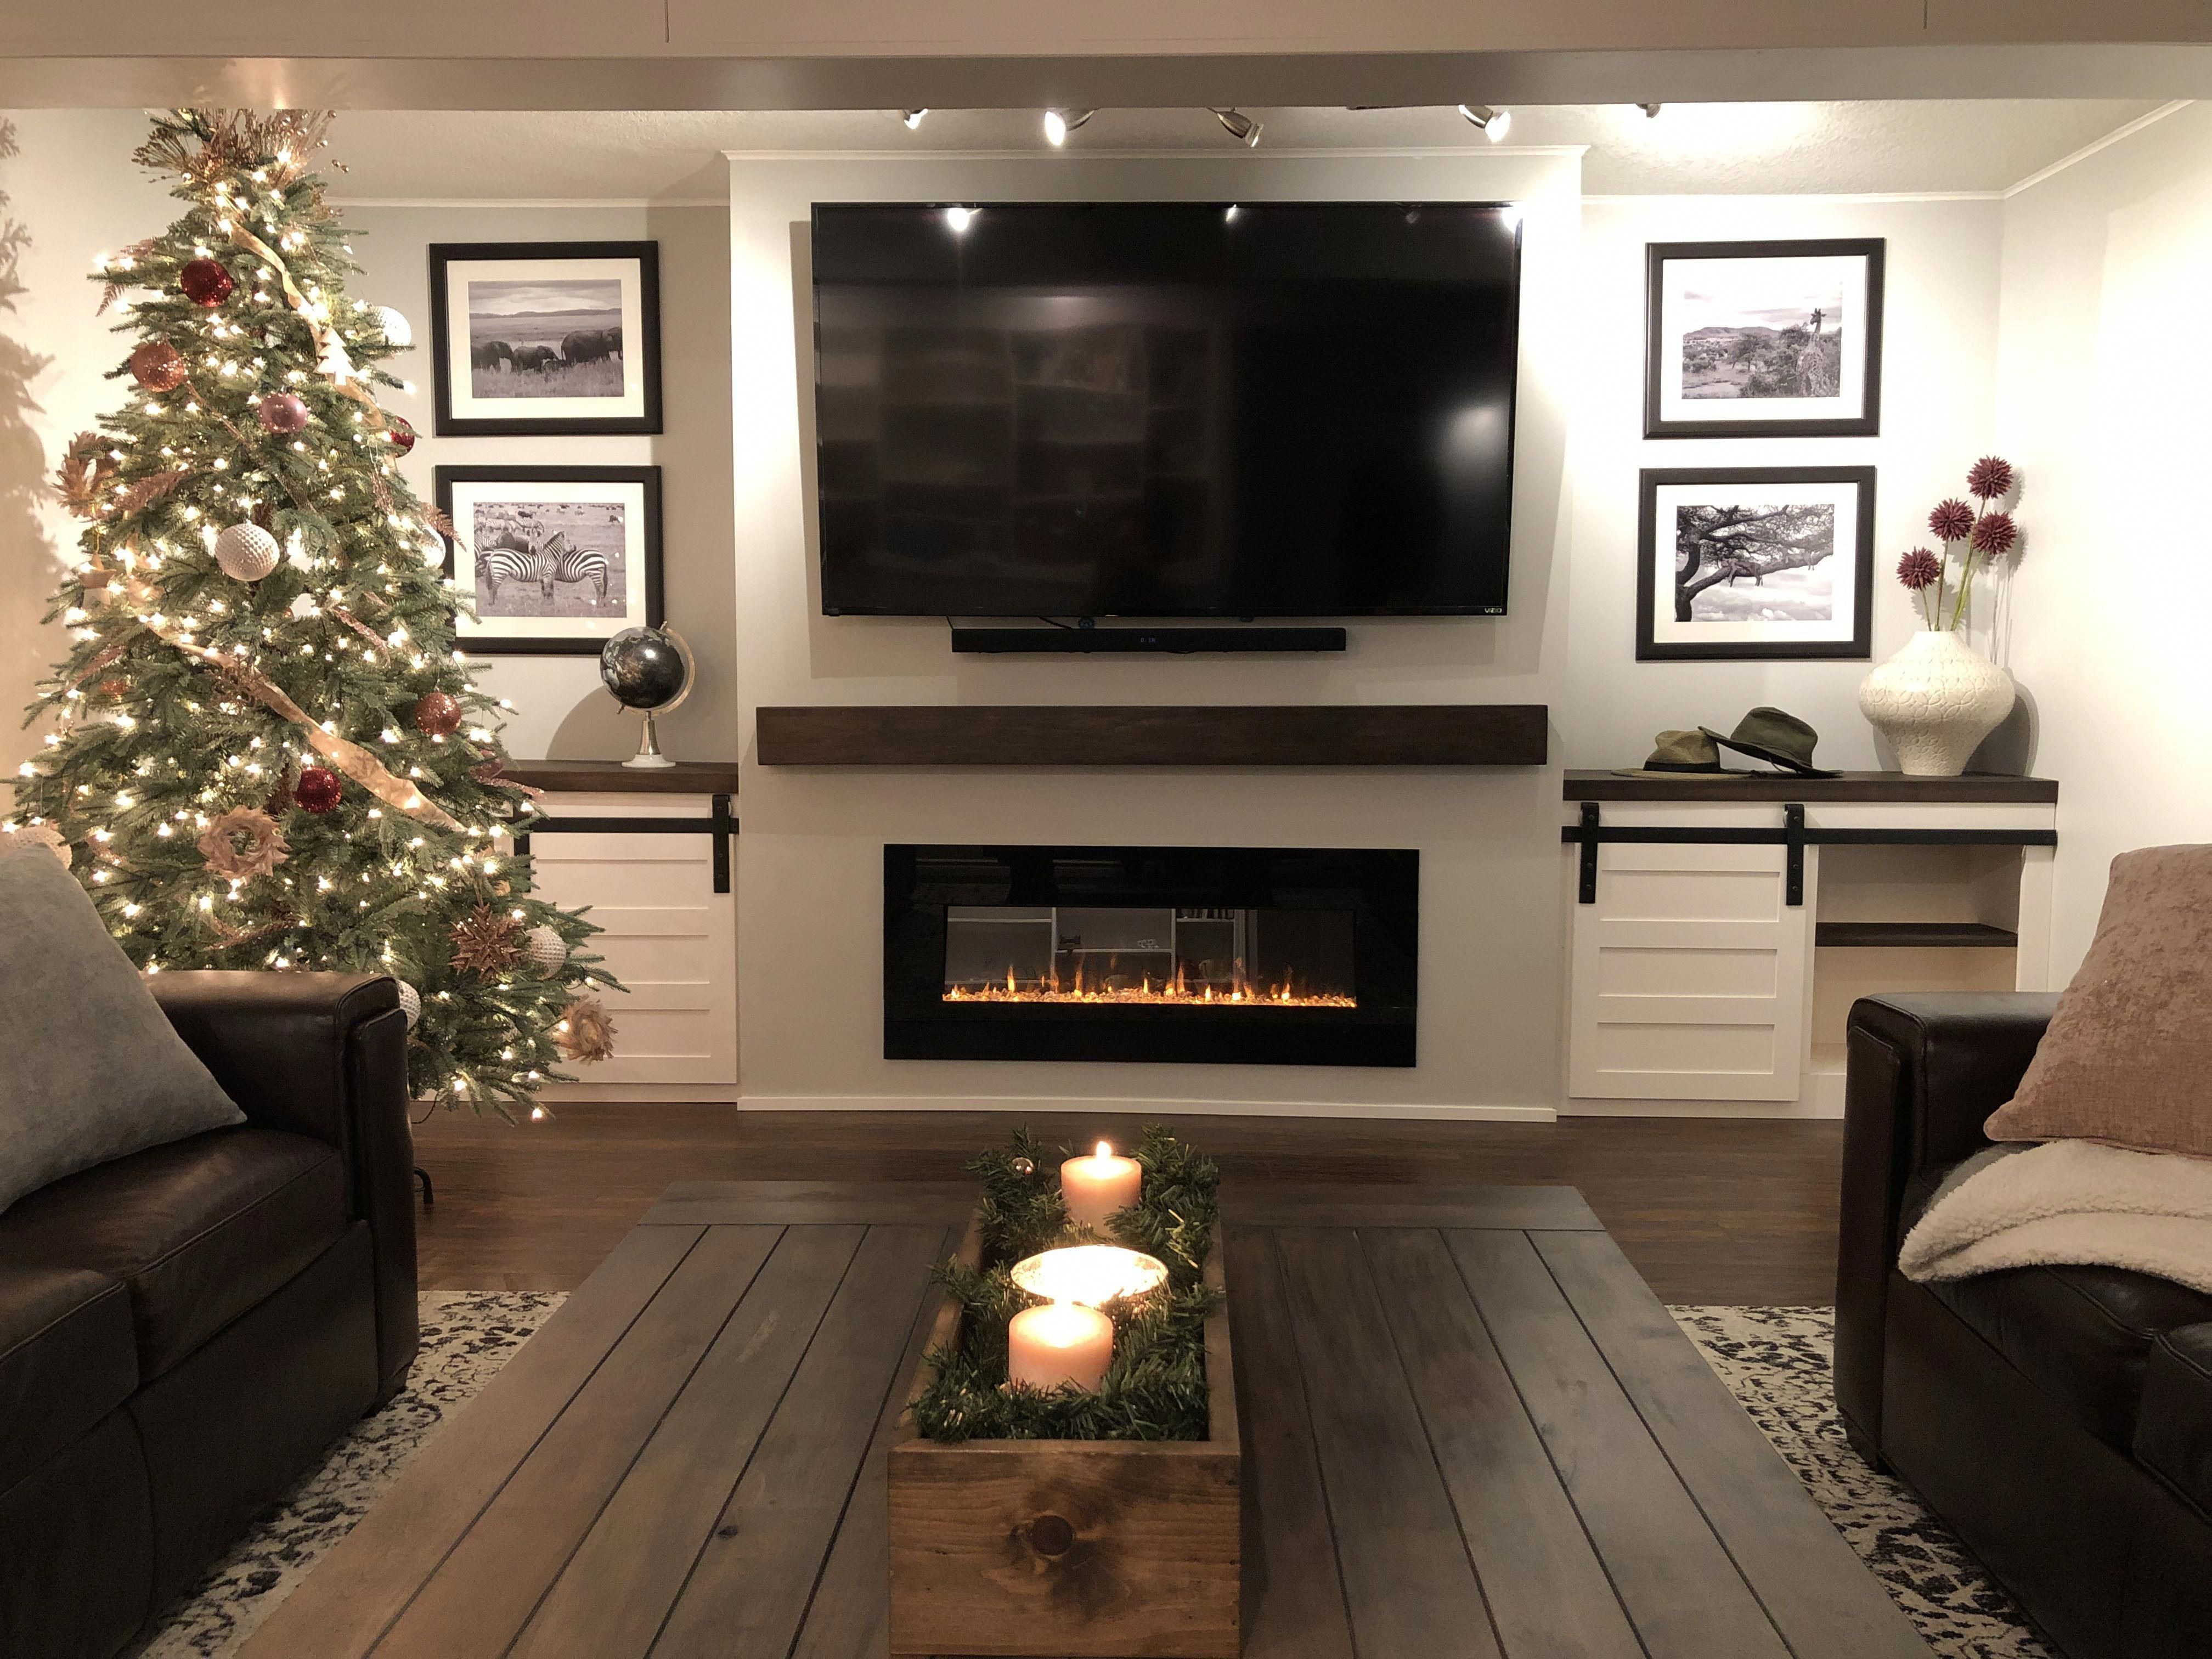 30 Incredible Fireplace Ideas For Your Best Home Design With Images Basement Living Rooms Living Room With Fireplace